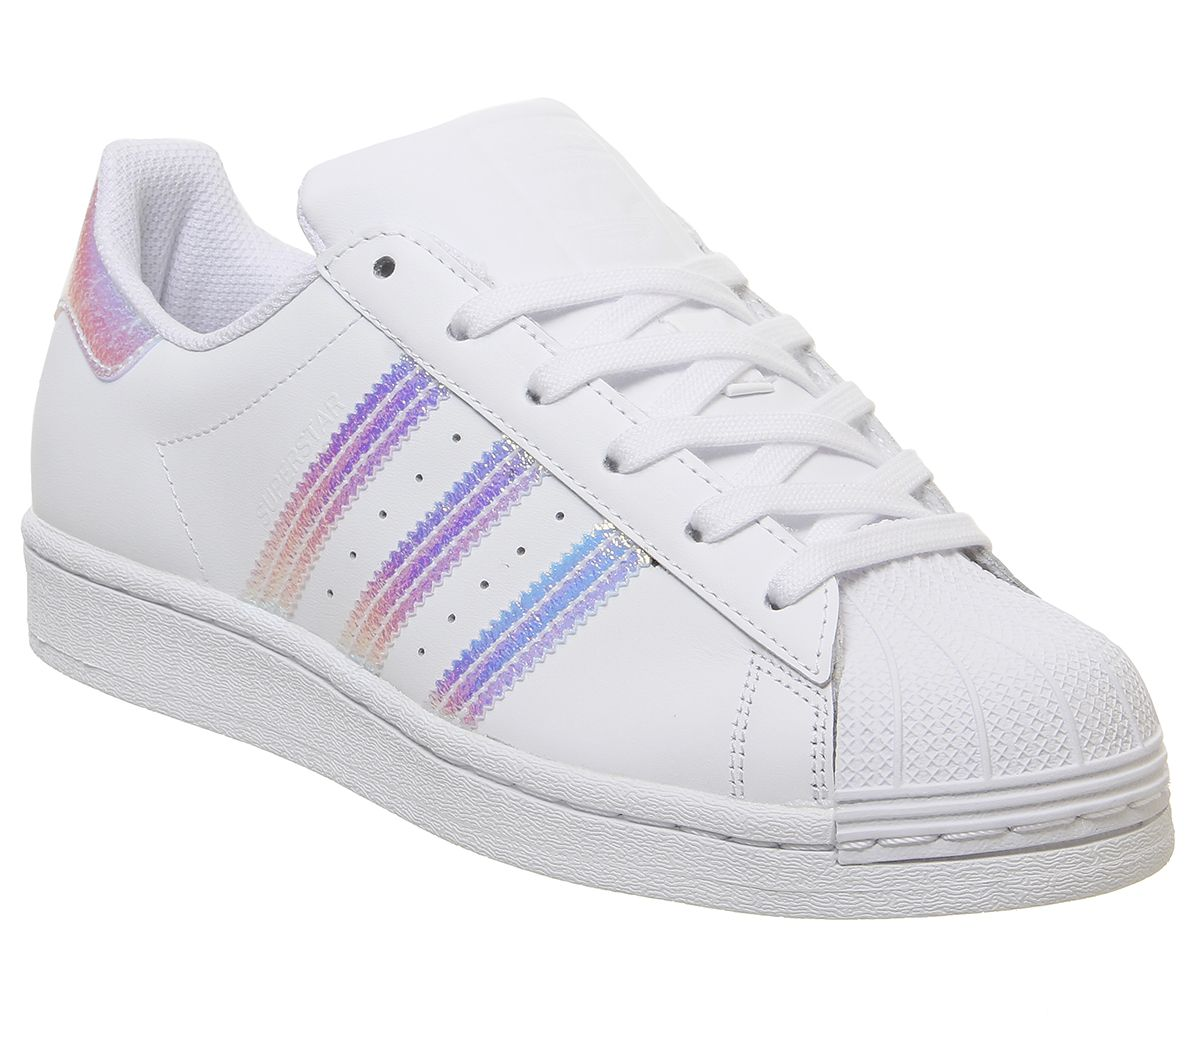 adidas superstar femme taille 35 allow project.eu